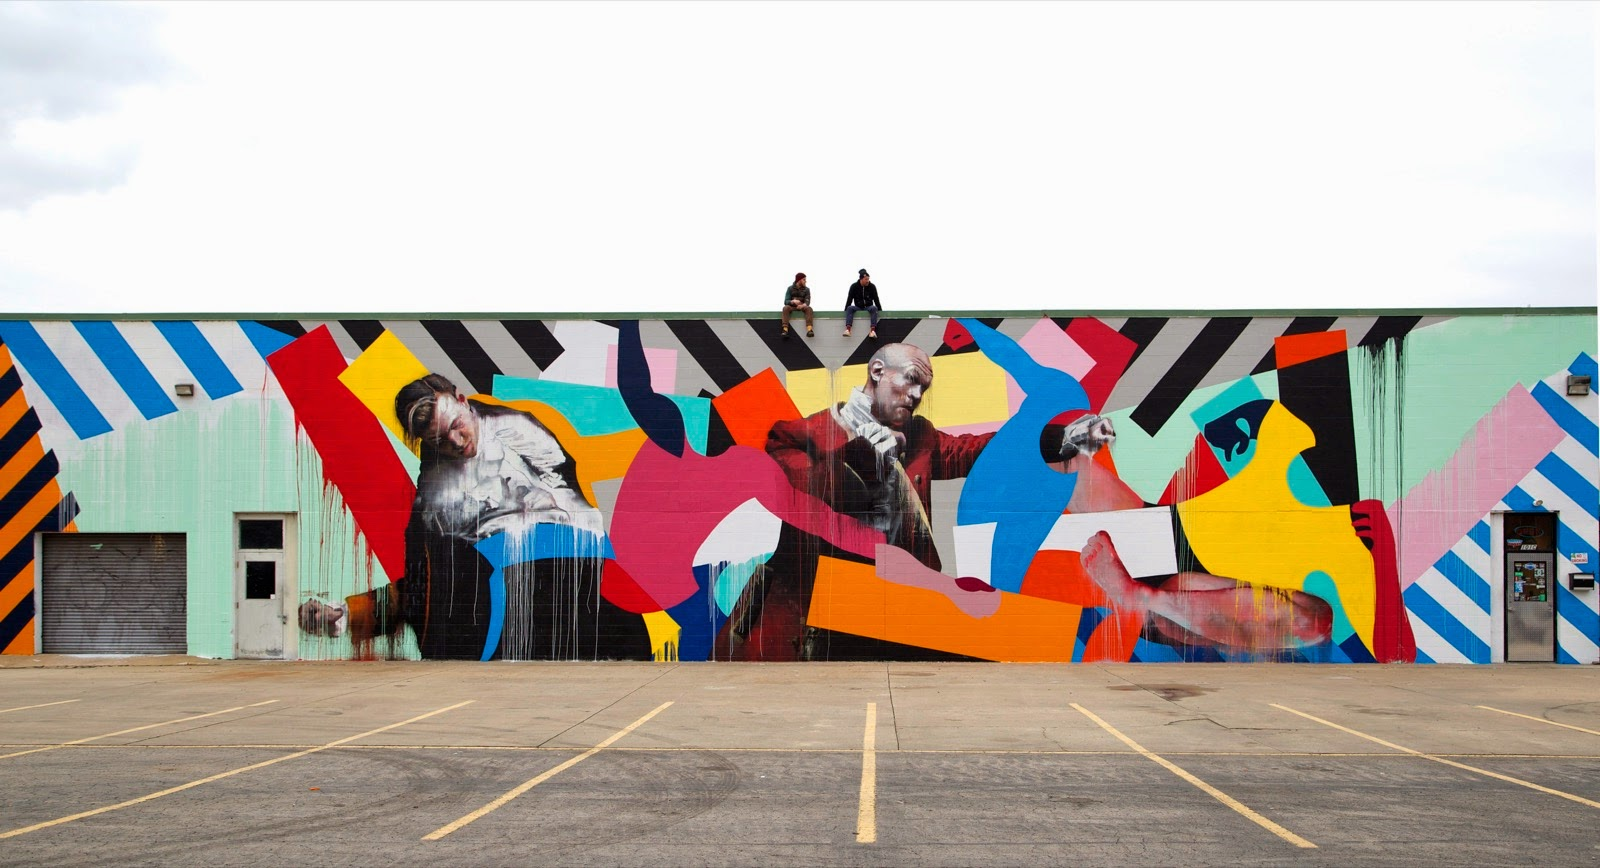 conor-harrington-maser-new-mural-in-fort-smith-usa-07